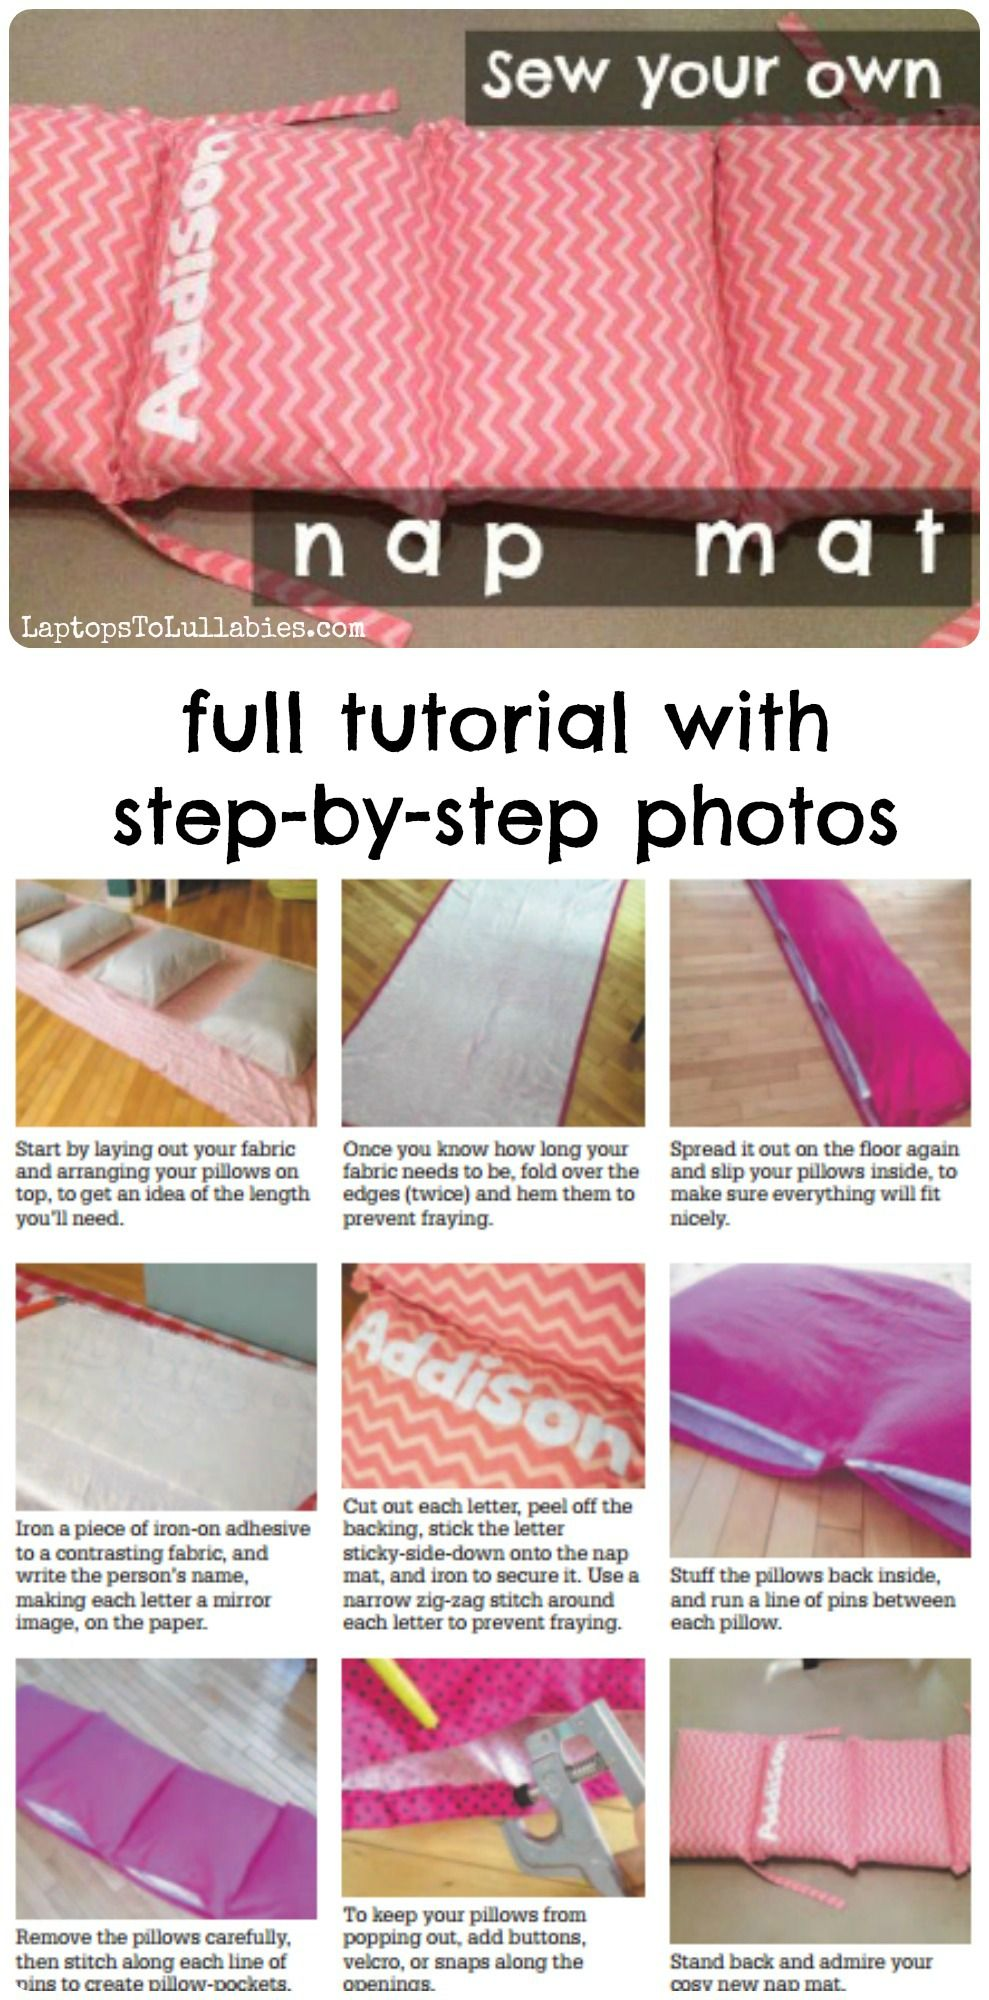 How to sew your own nap mat full tutorial m y h a n